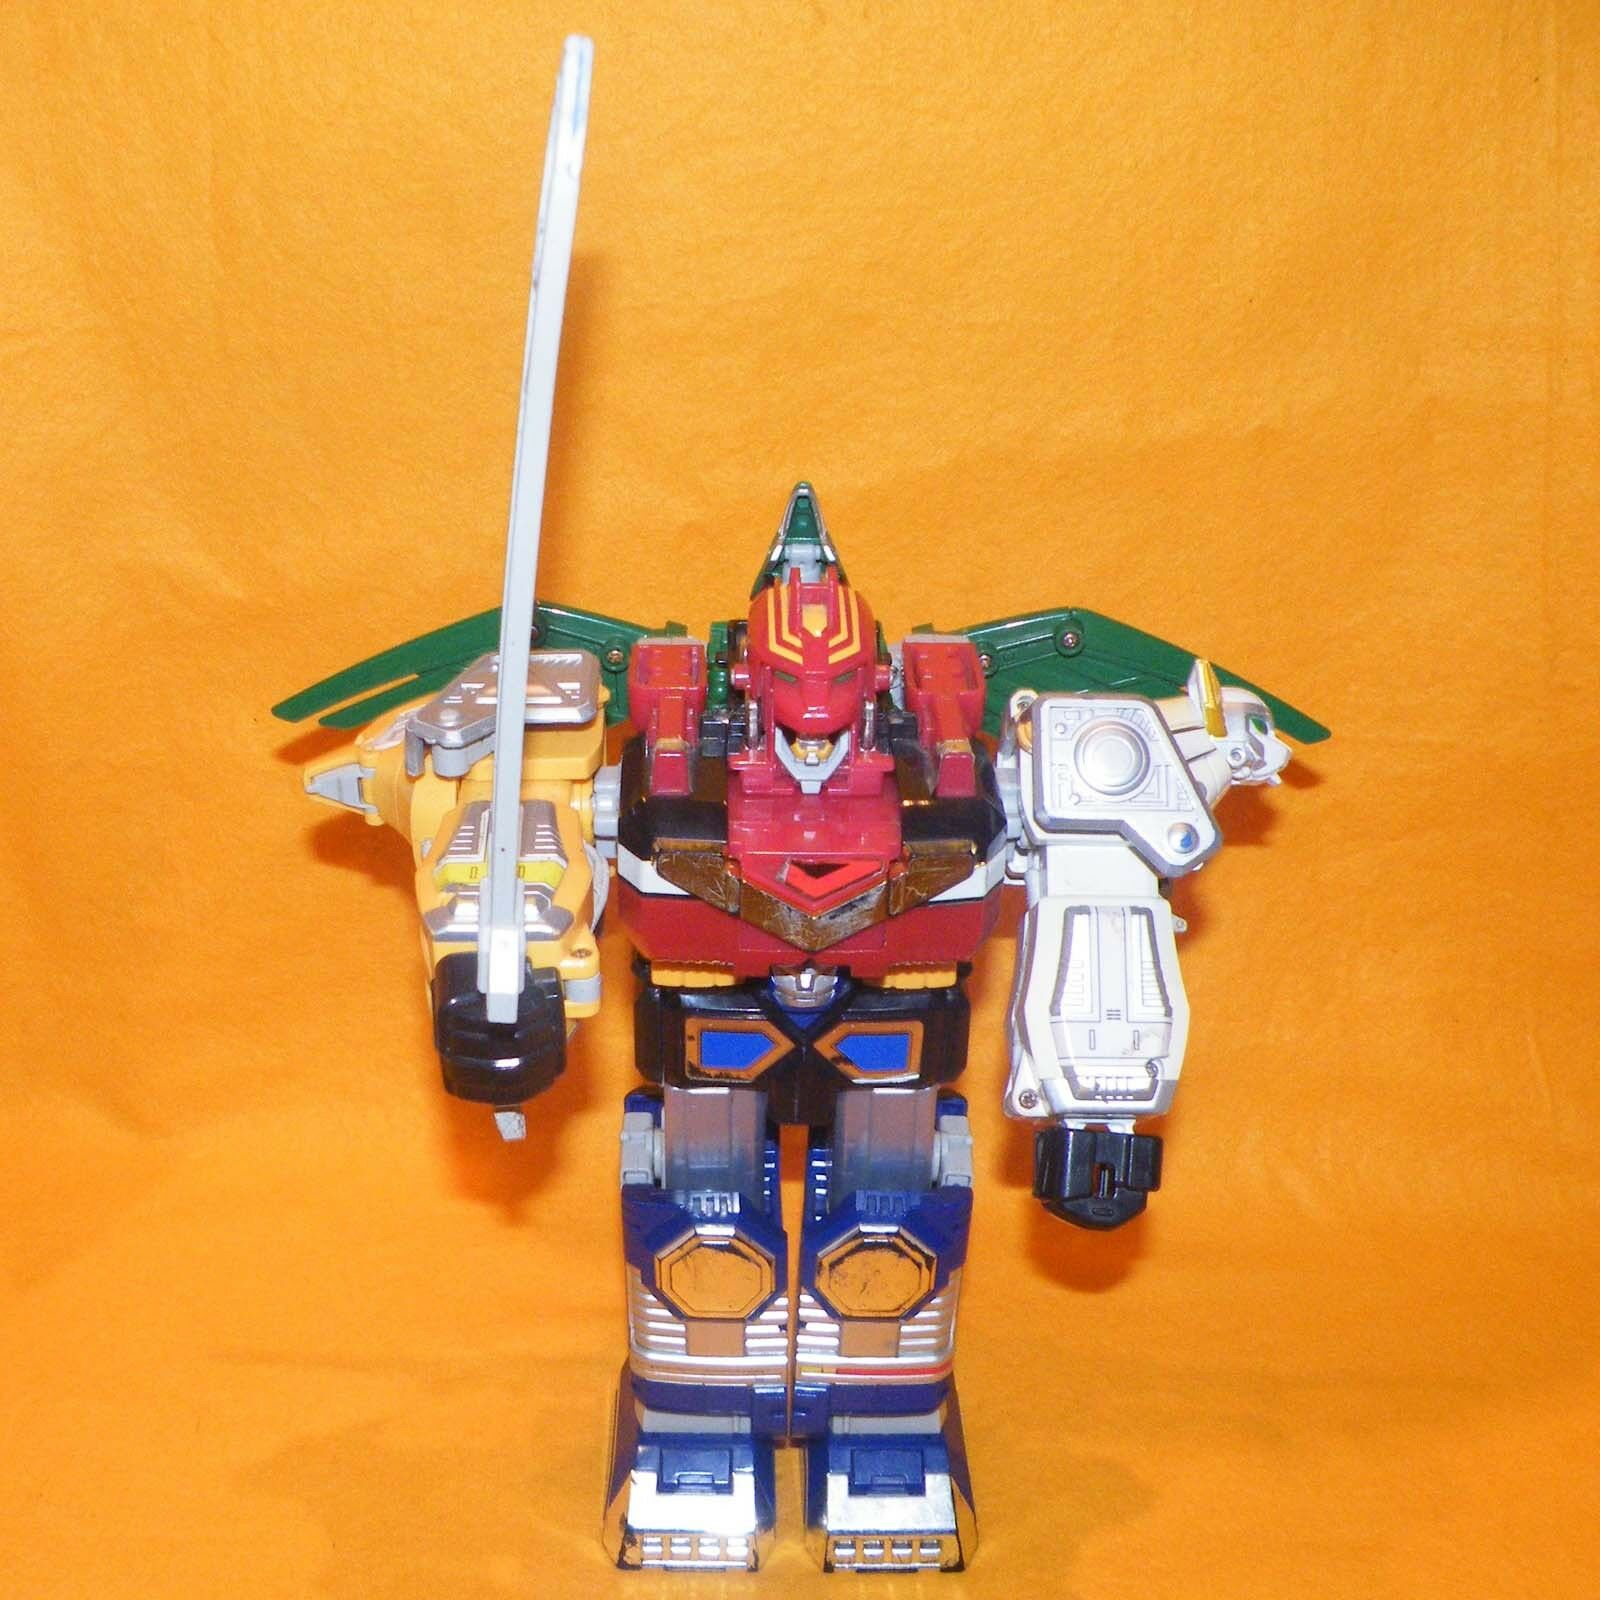 VINTAGE 1998 BANDAI POWER RANGERS GINGAIOH DX STARBEAST COMBINATIONI ROBOT TOY